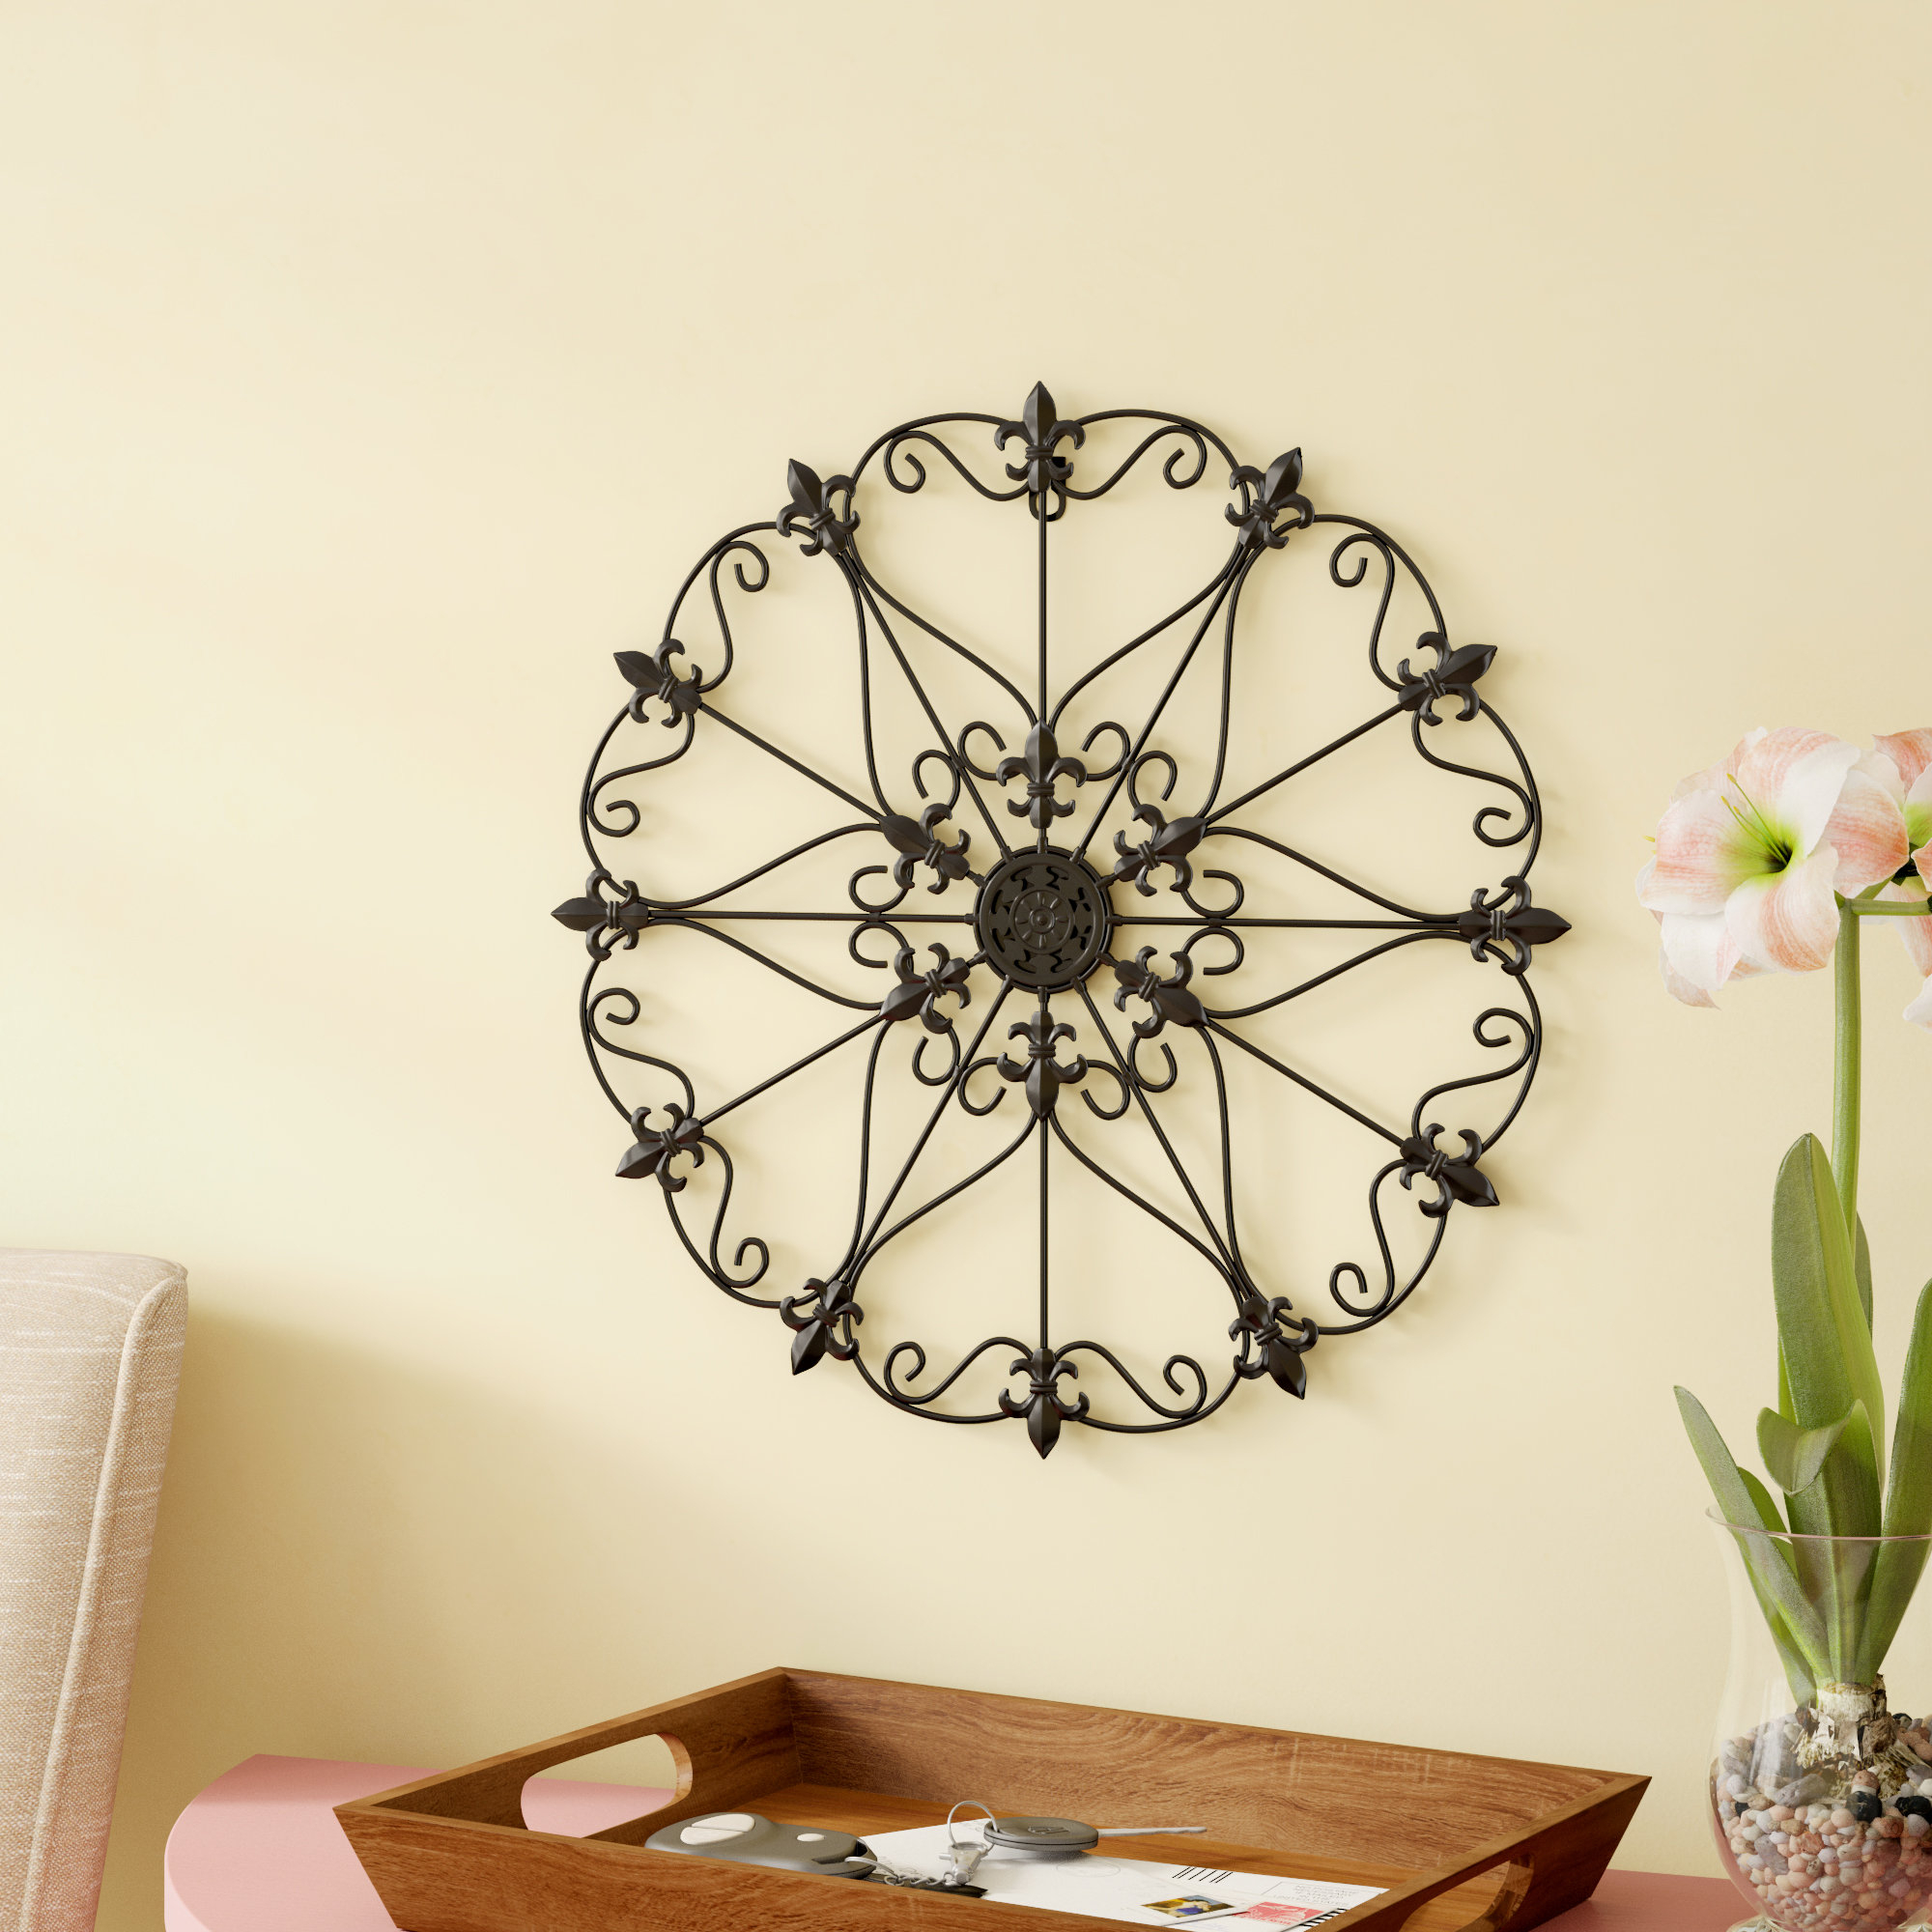 Medallion Wall Decor | Wayfair within European Medallion Wall Decor (Image 18 of 30)